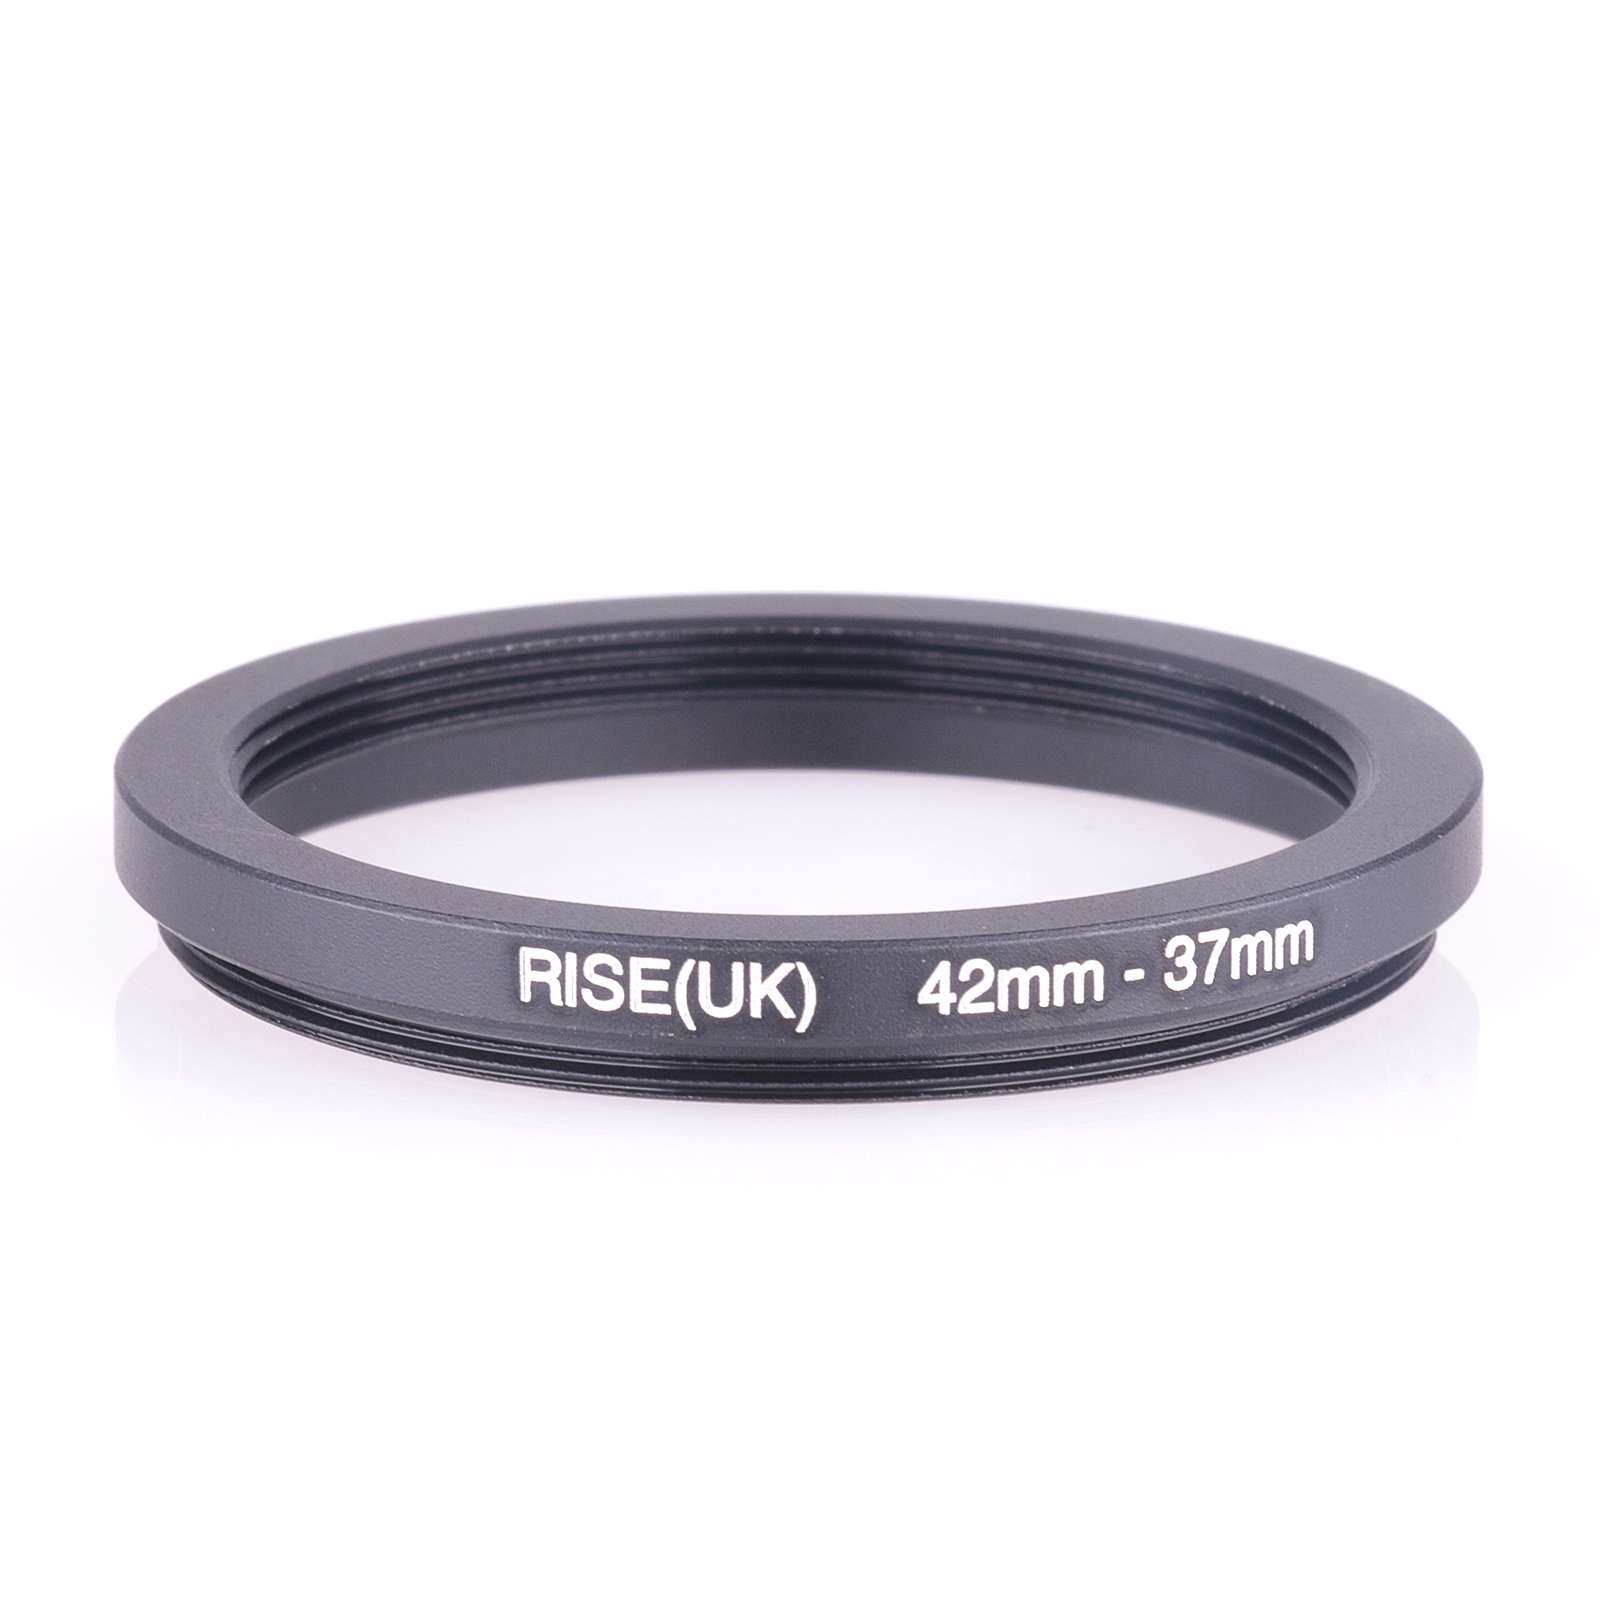 RISE(UK) 42mm-37mm 42-37 Mm 42 To 37 Step Down Filter Ring Adapter